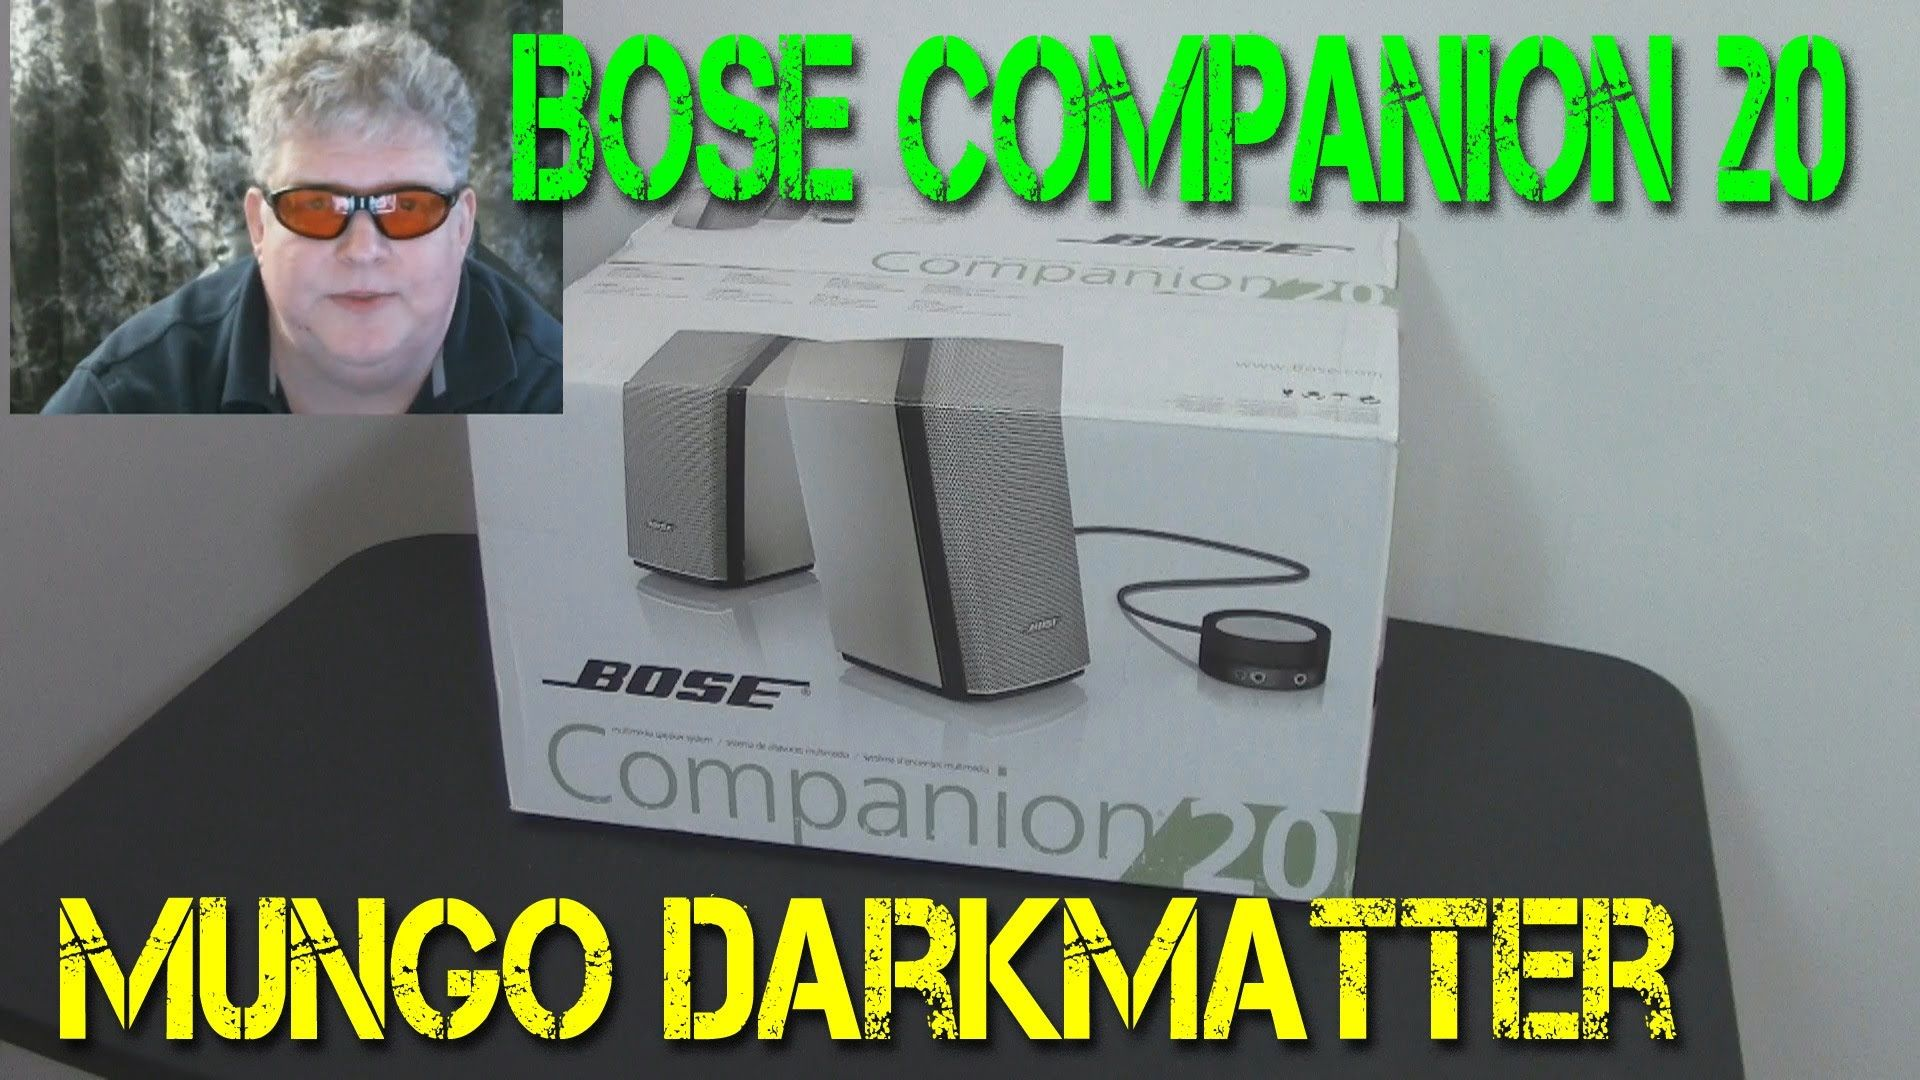 Mungo Darkmatter reviews the Bose Companion 20 PC speakers.